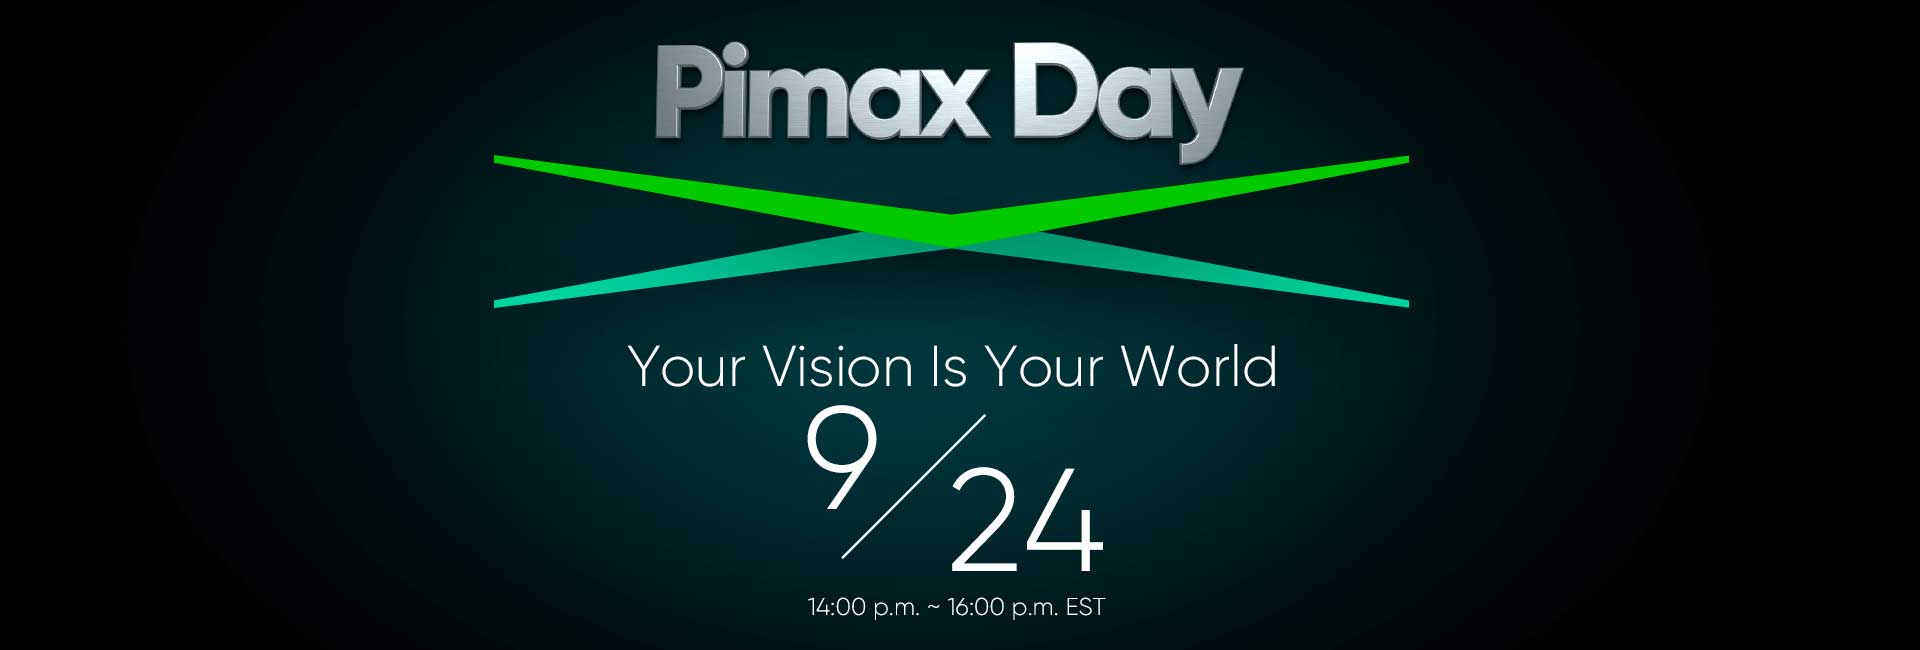 pimax-day